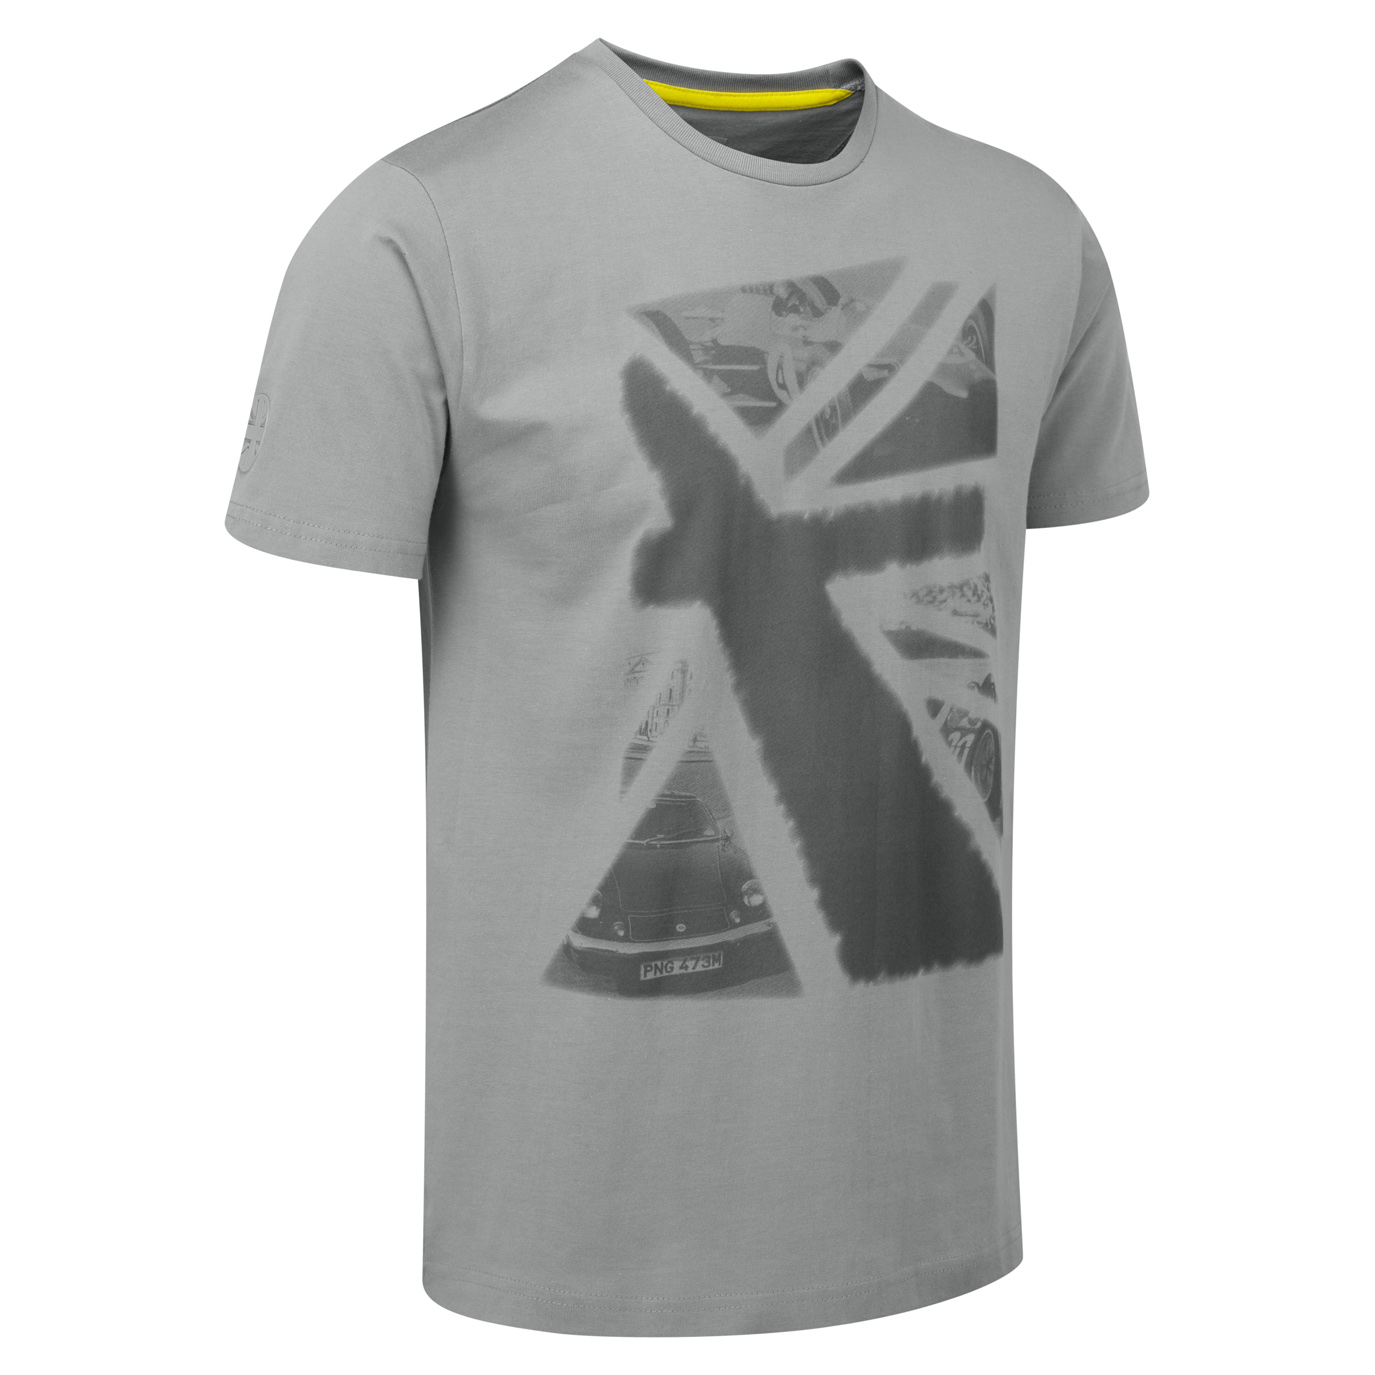 CLASSIC GRAPHIC T-SHIRT